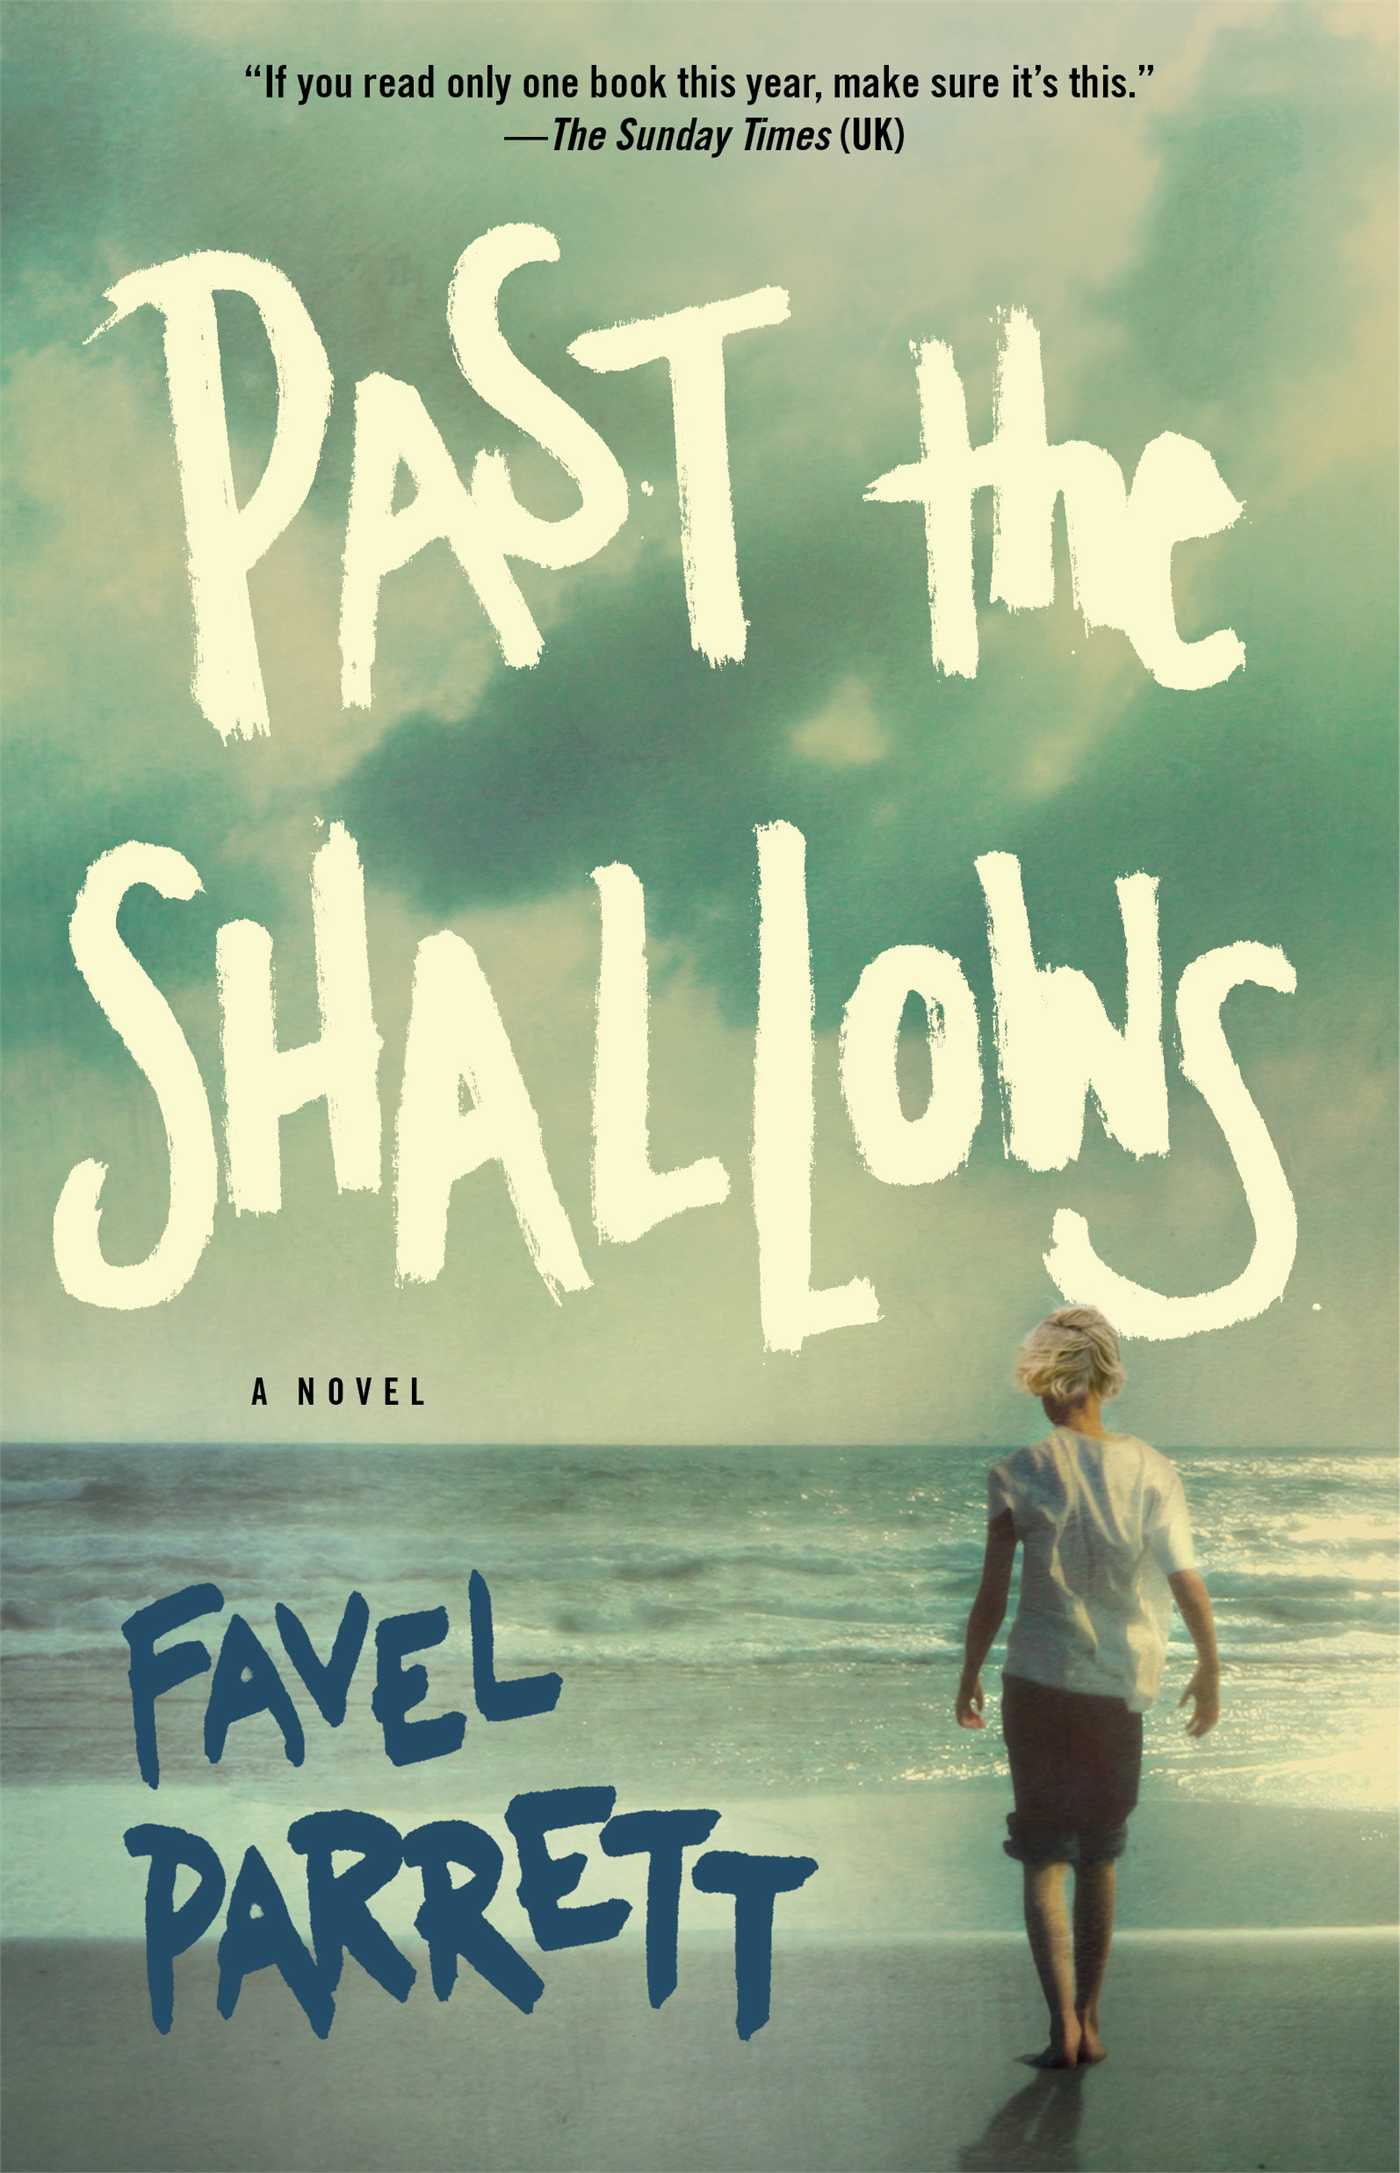 Past-the-shallows-9781476754871_hr